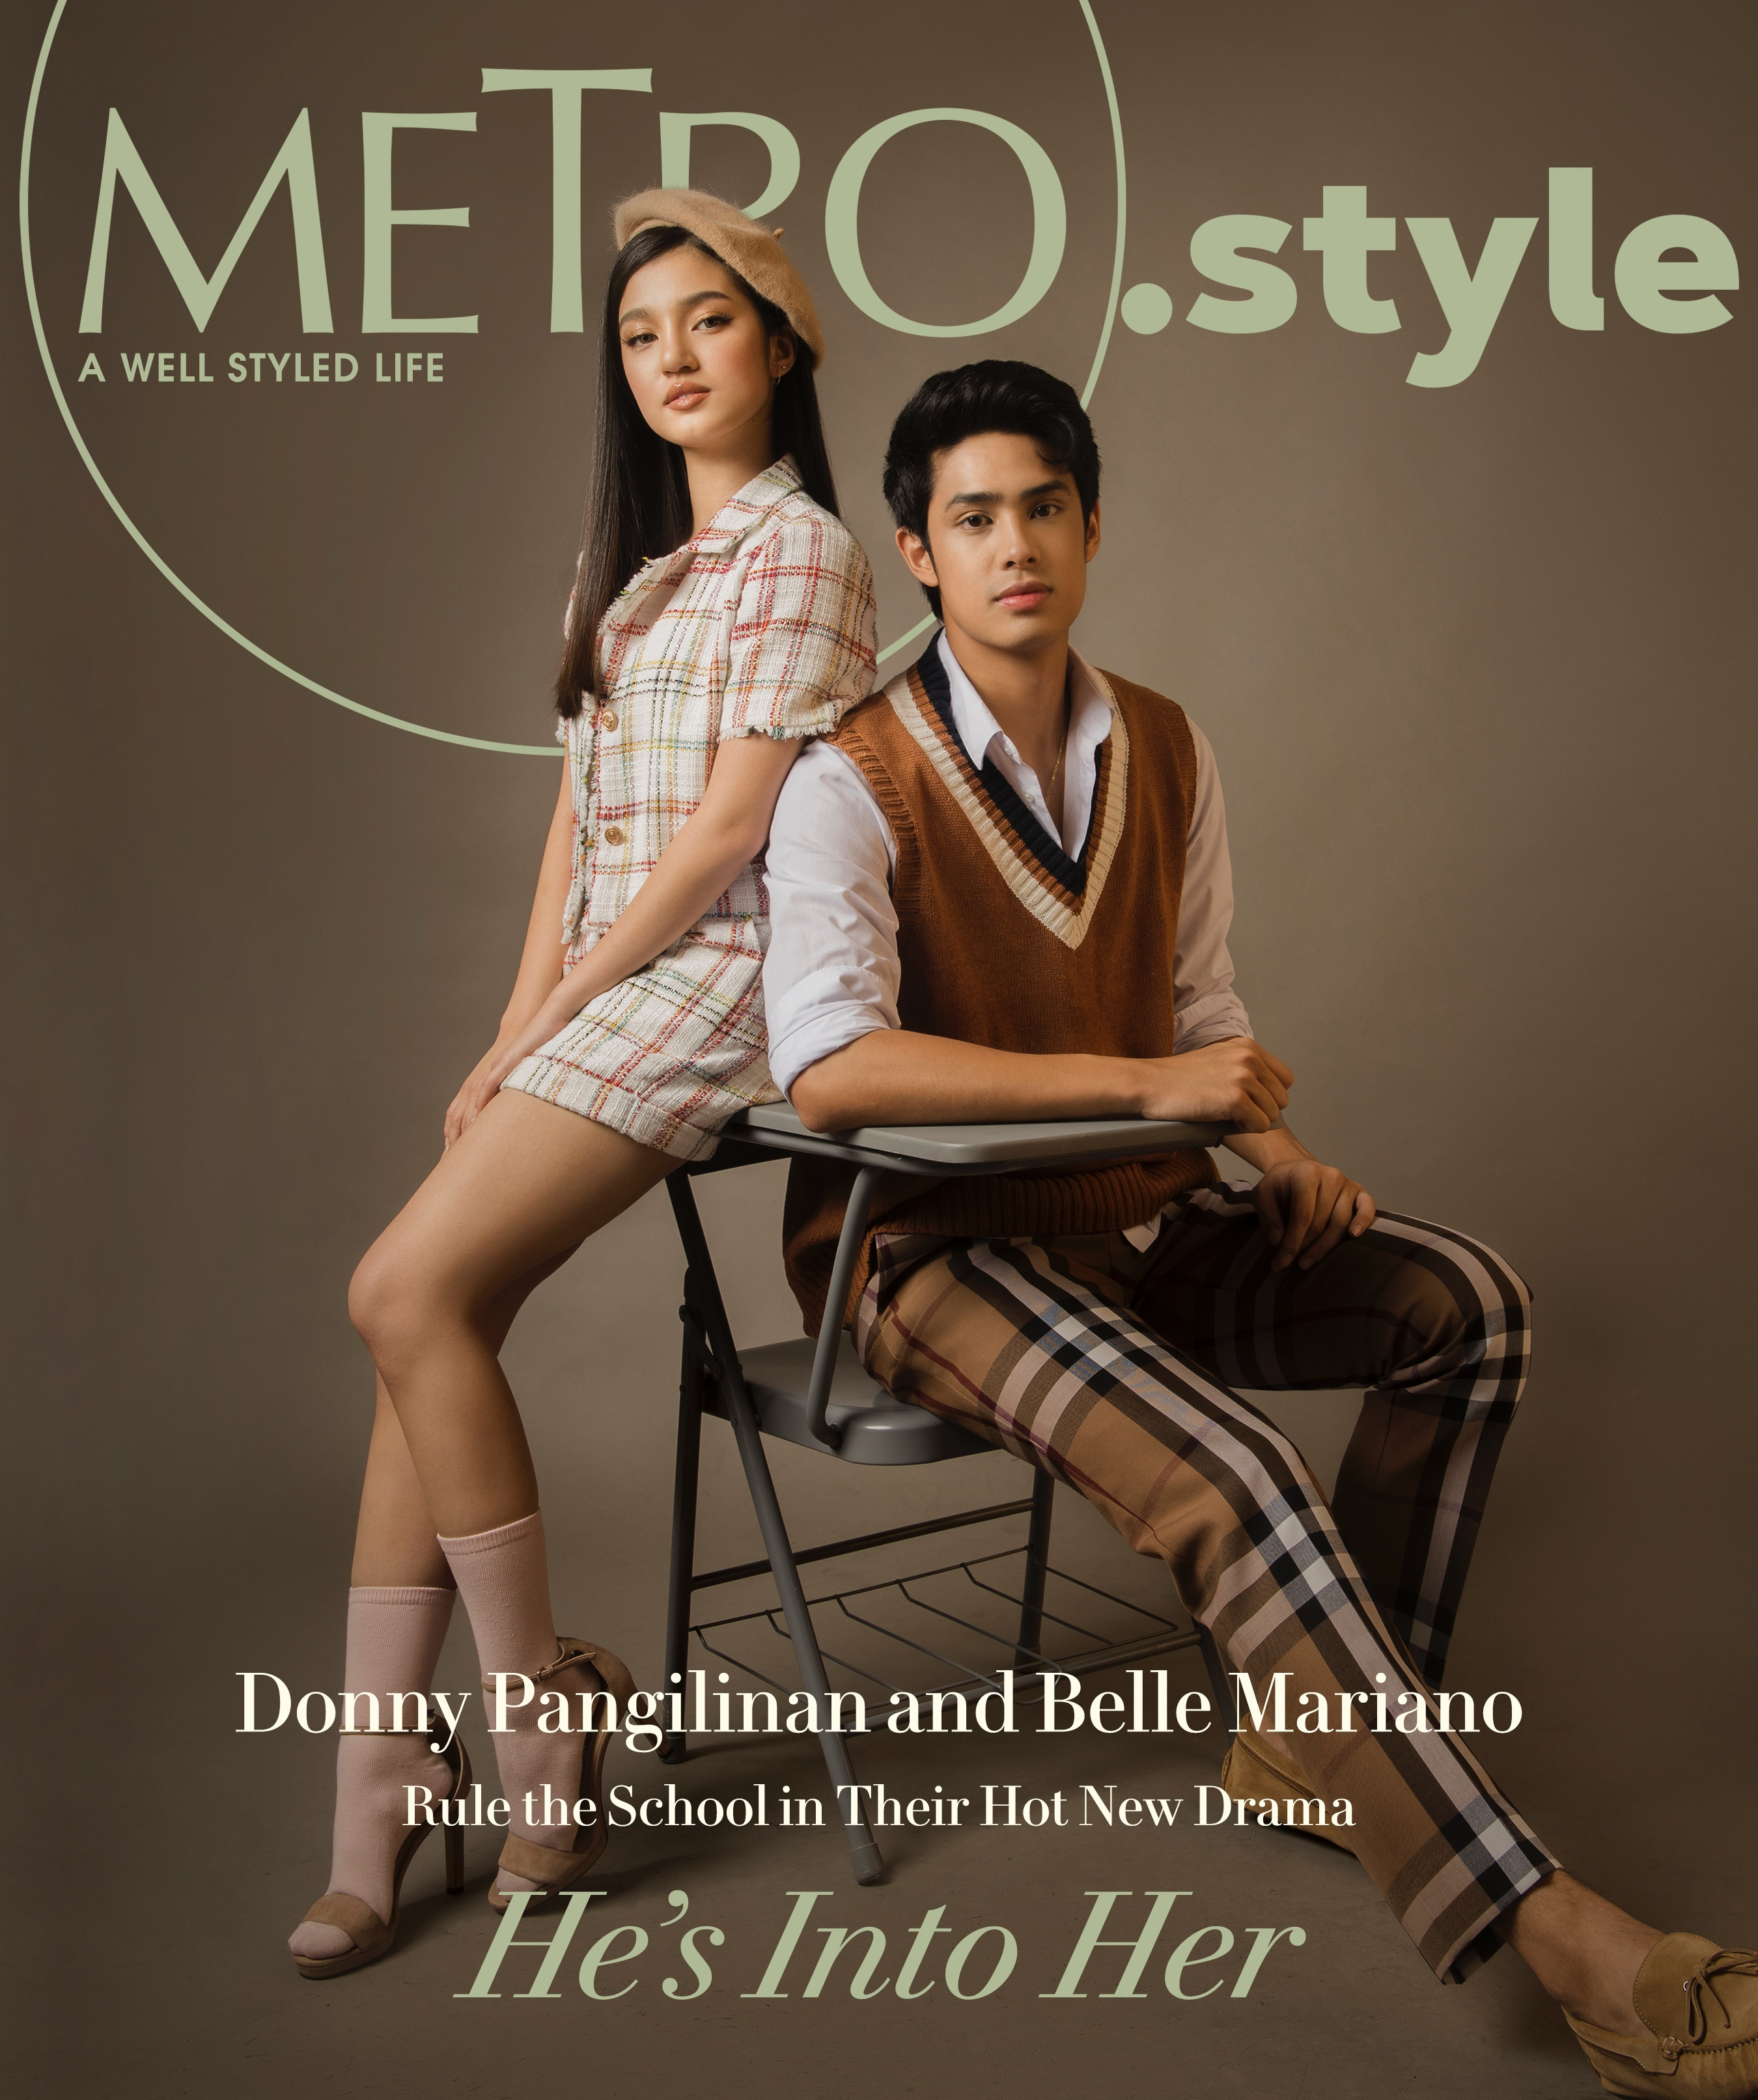 MetroStyle DonBelle Donny Pangilinan Belle Mariano Cover 1